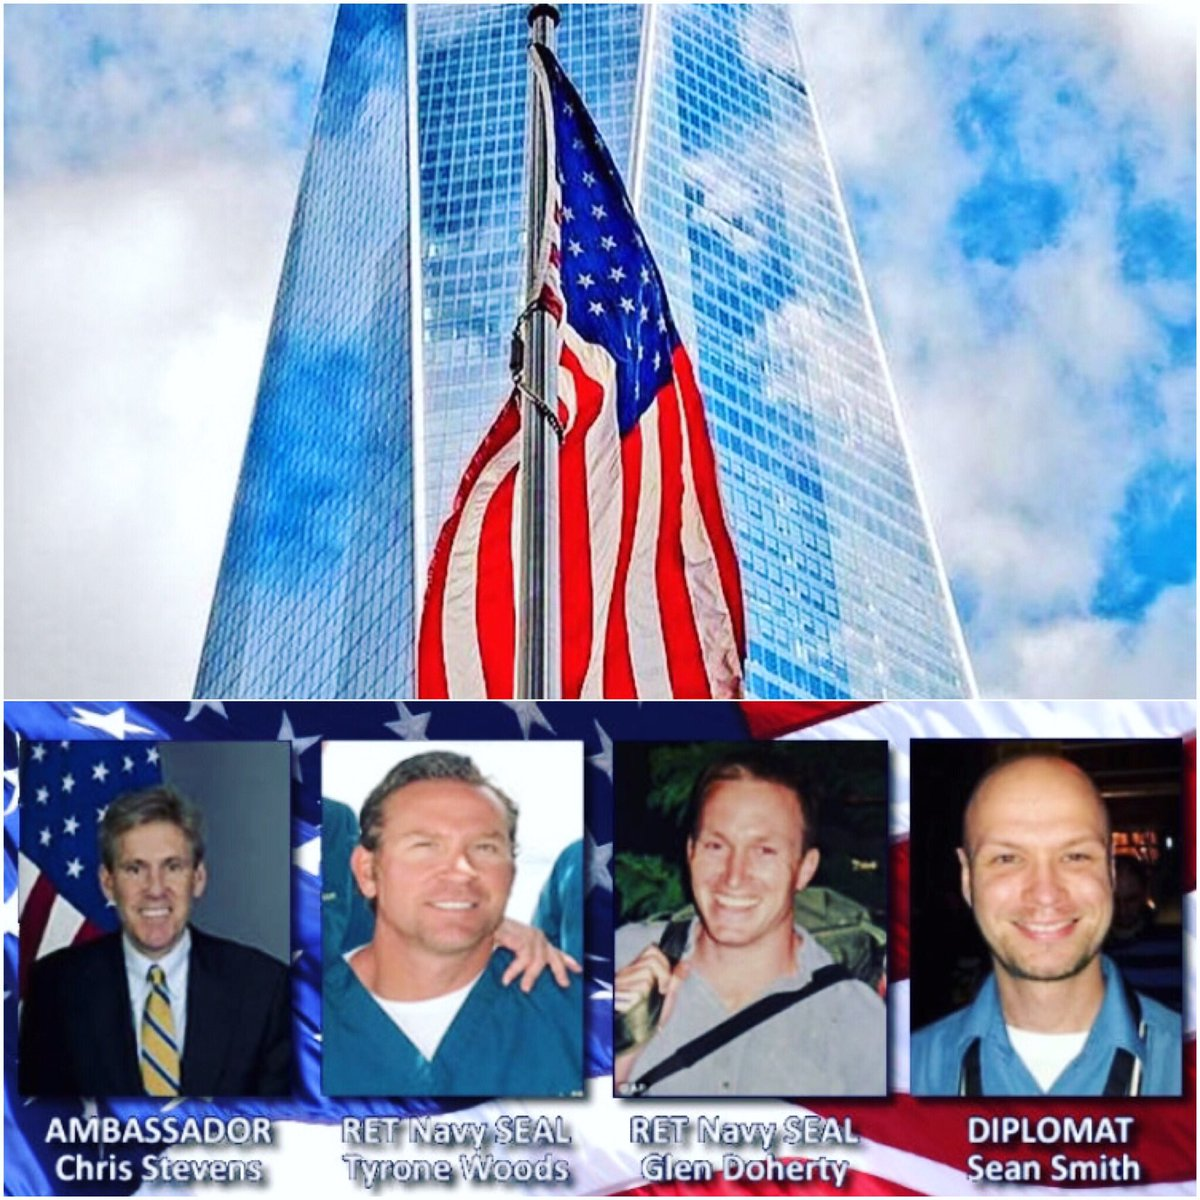 Today we also remember the 4 Americans we lost in Benghazi on 9/11/12